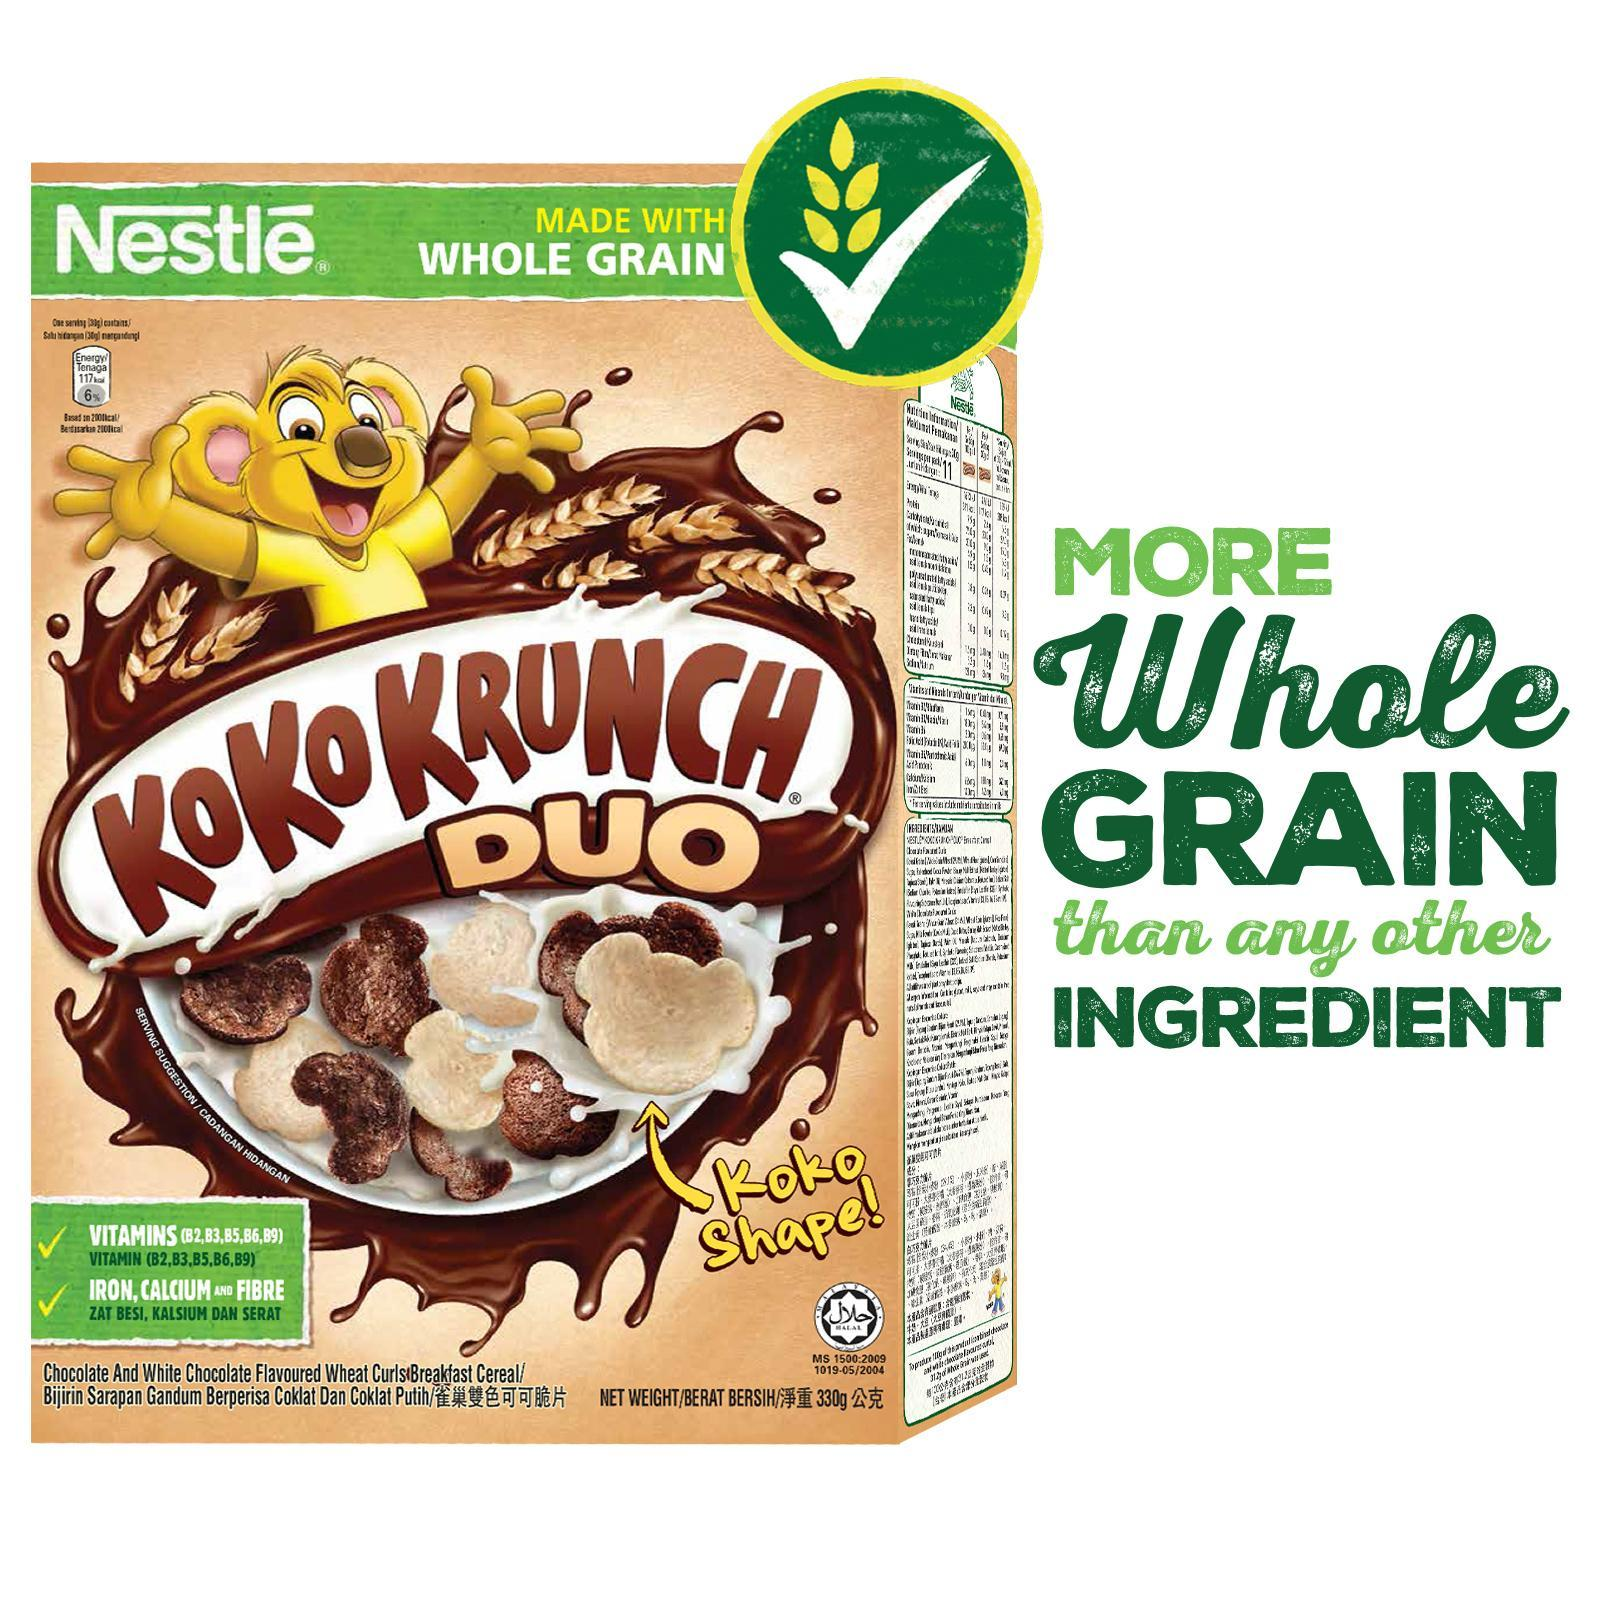 Nestle Koko Krunch Duo Cereal With Whole Grain By Redmart.